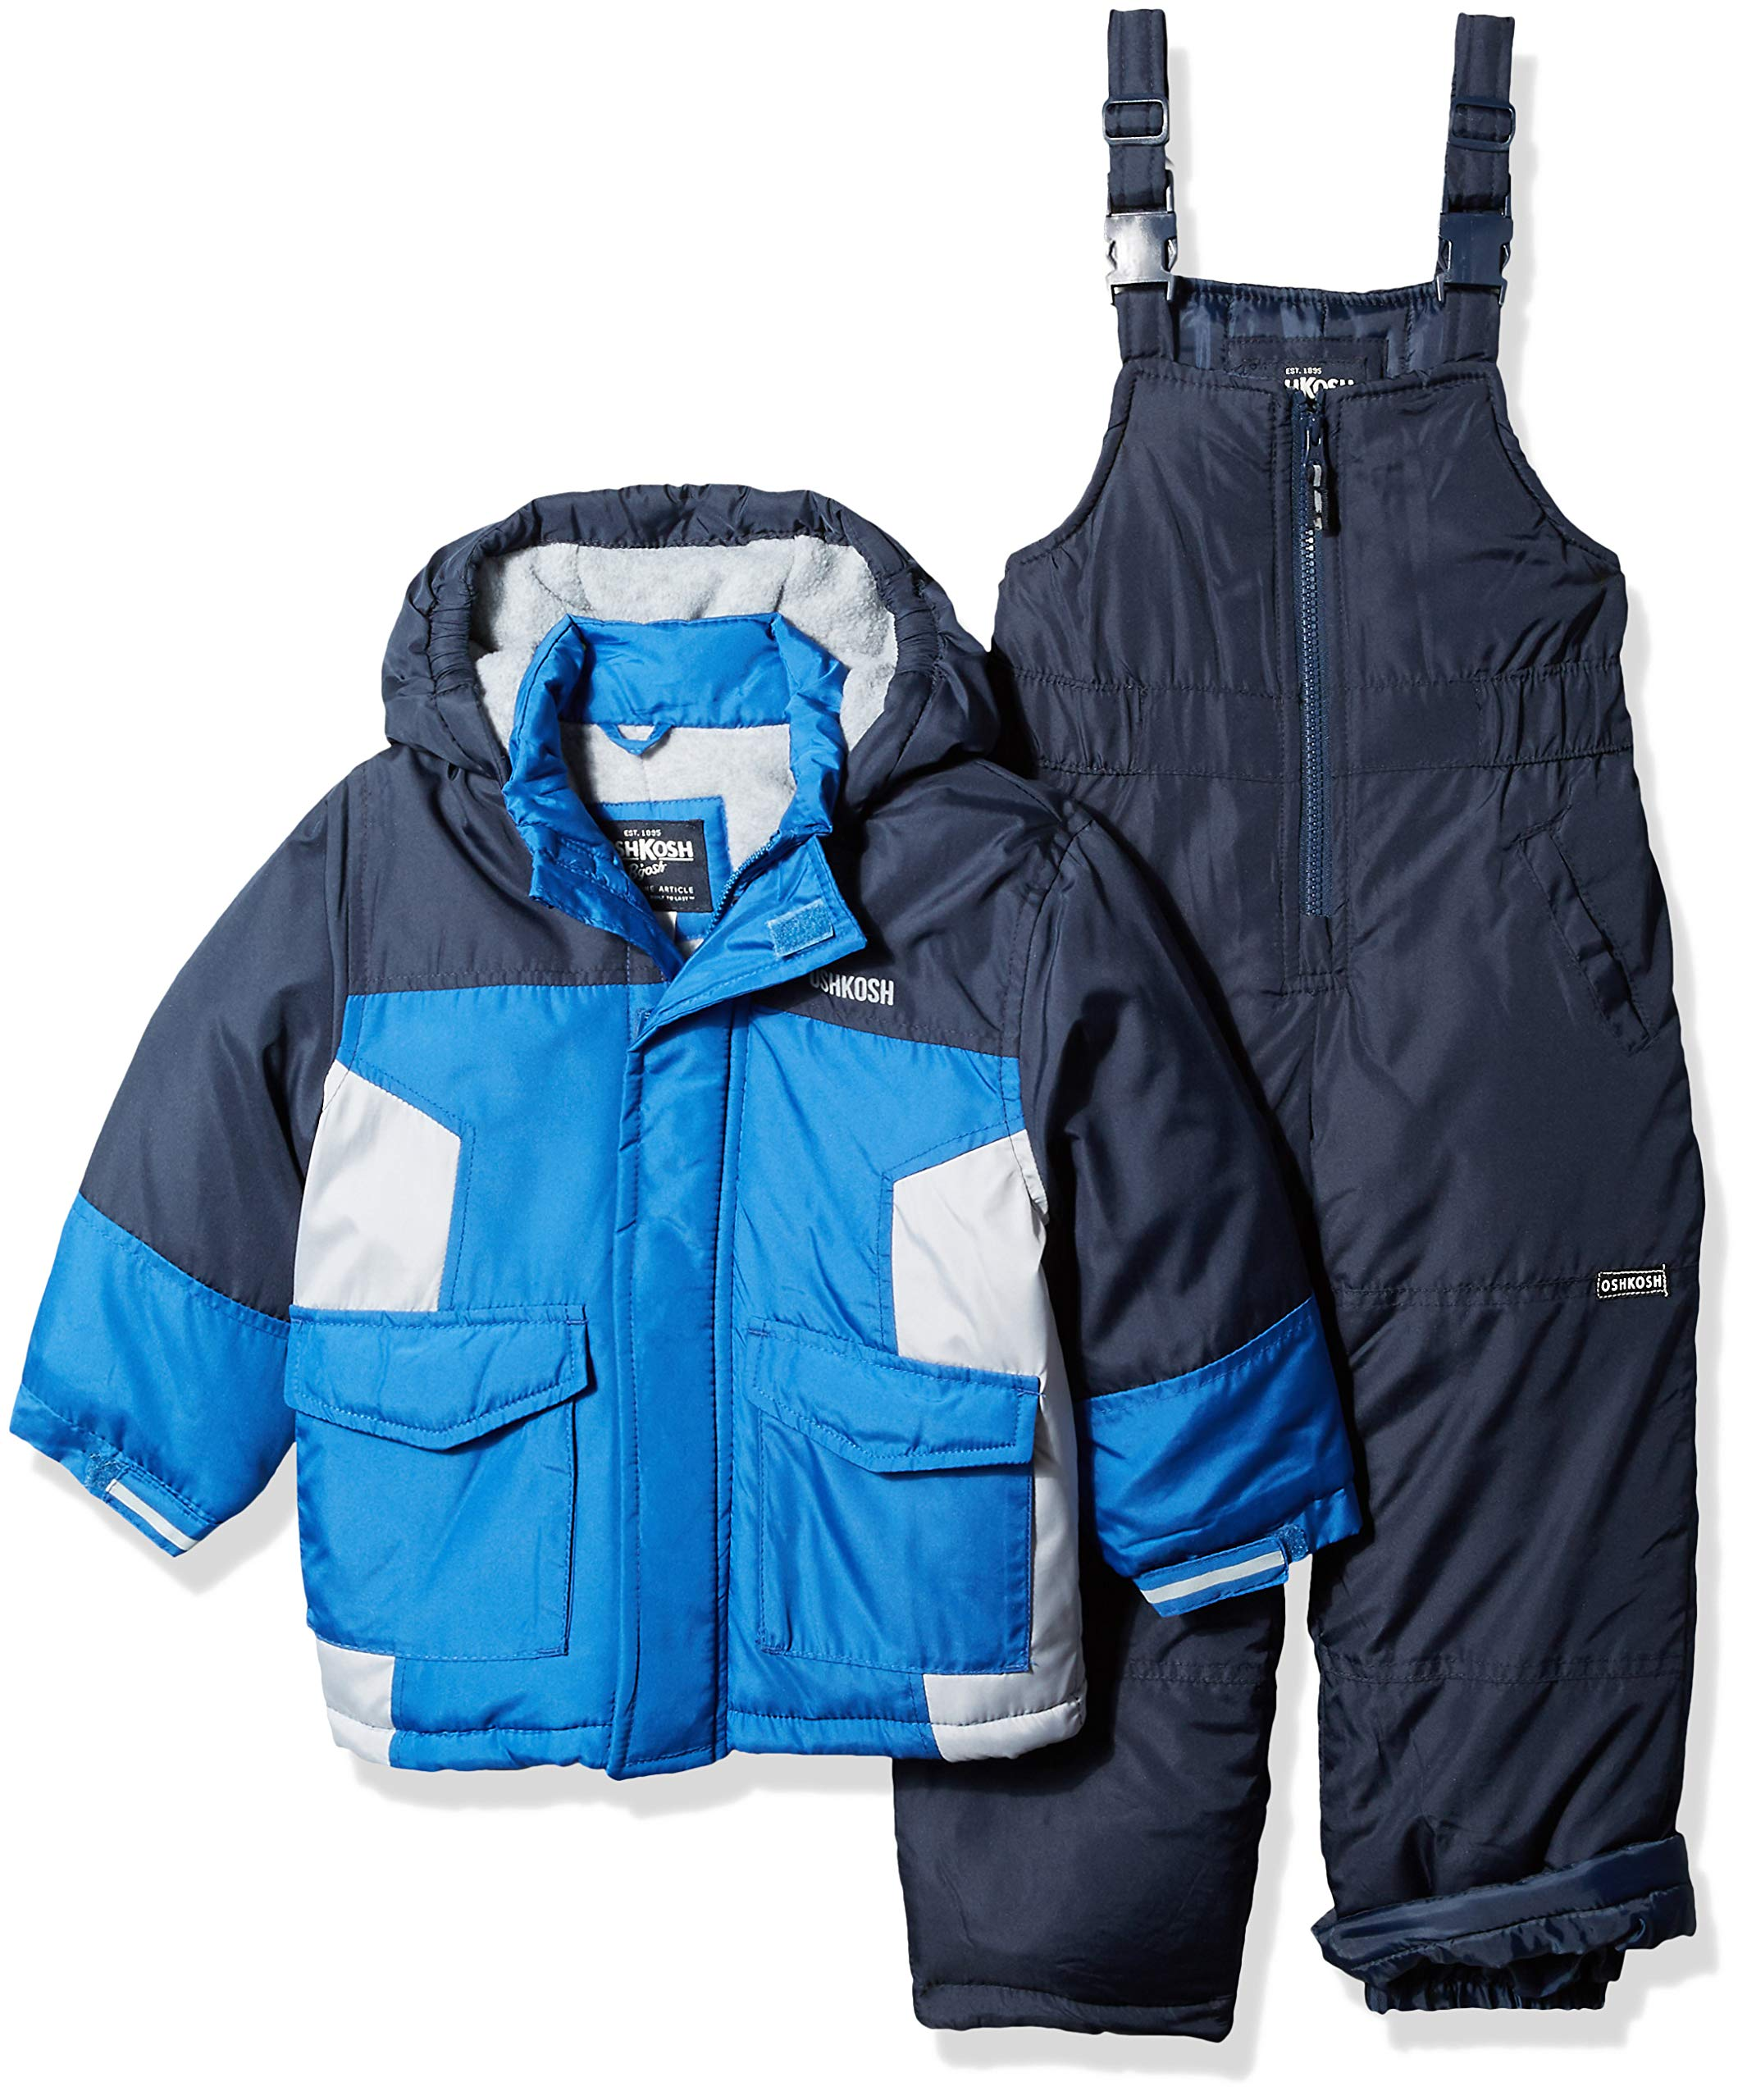 Osh Kosh Boys' Little Ski Jacket and Snowbib Snowsuit Set, deep Navy/Wolf Grey, 5/6